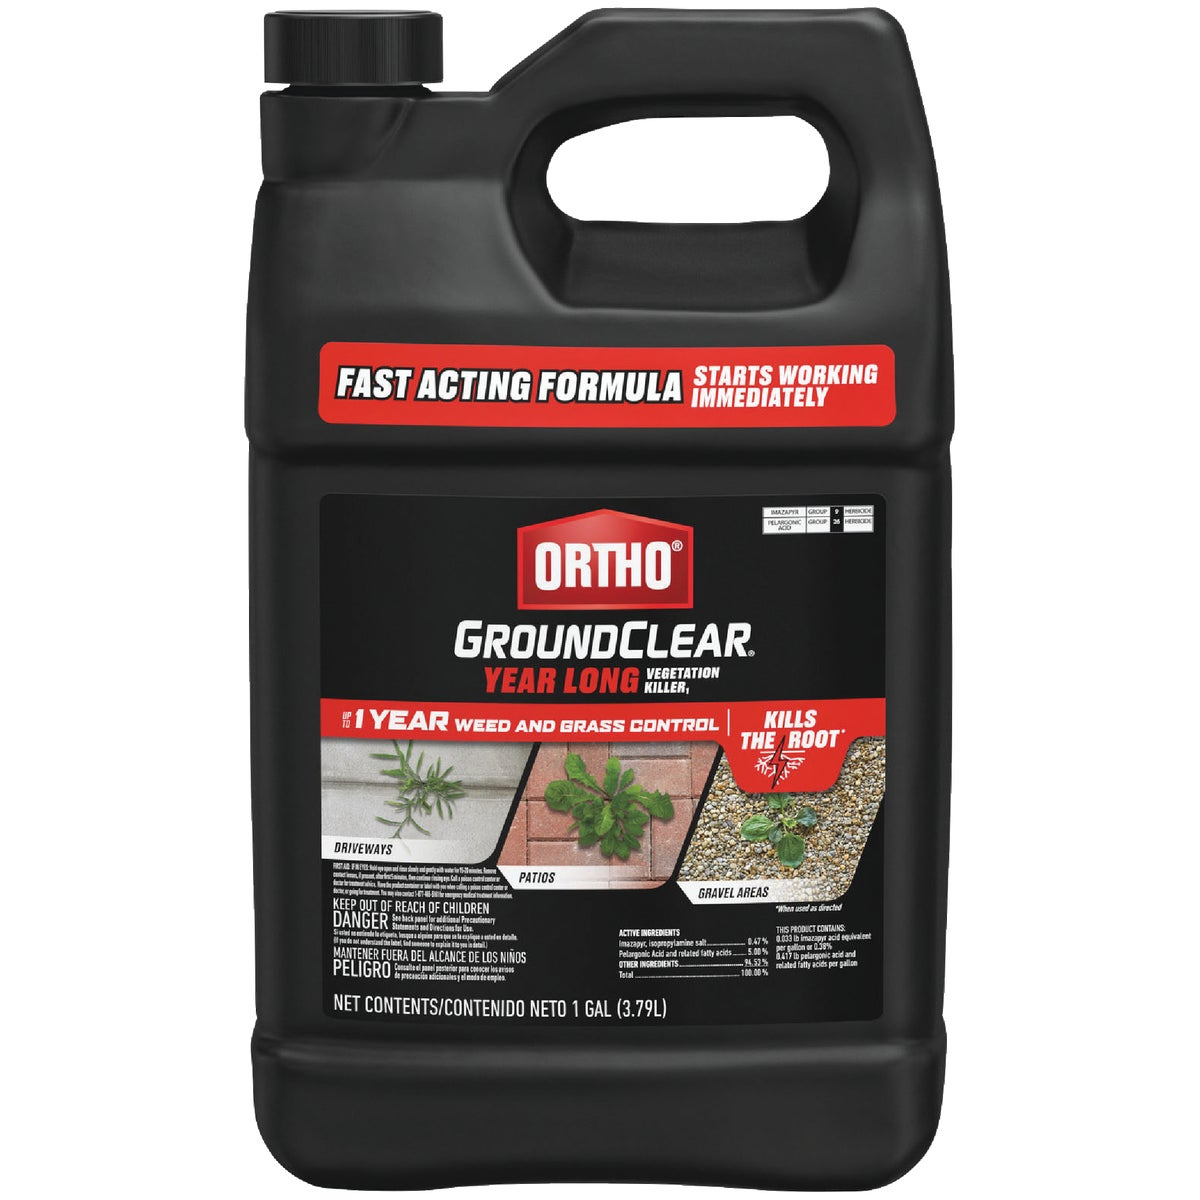 GAL VEGETATION KILLER - 0430510 by Scotts Company